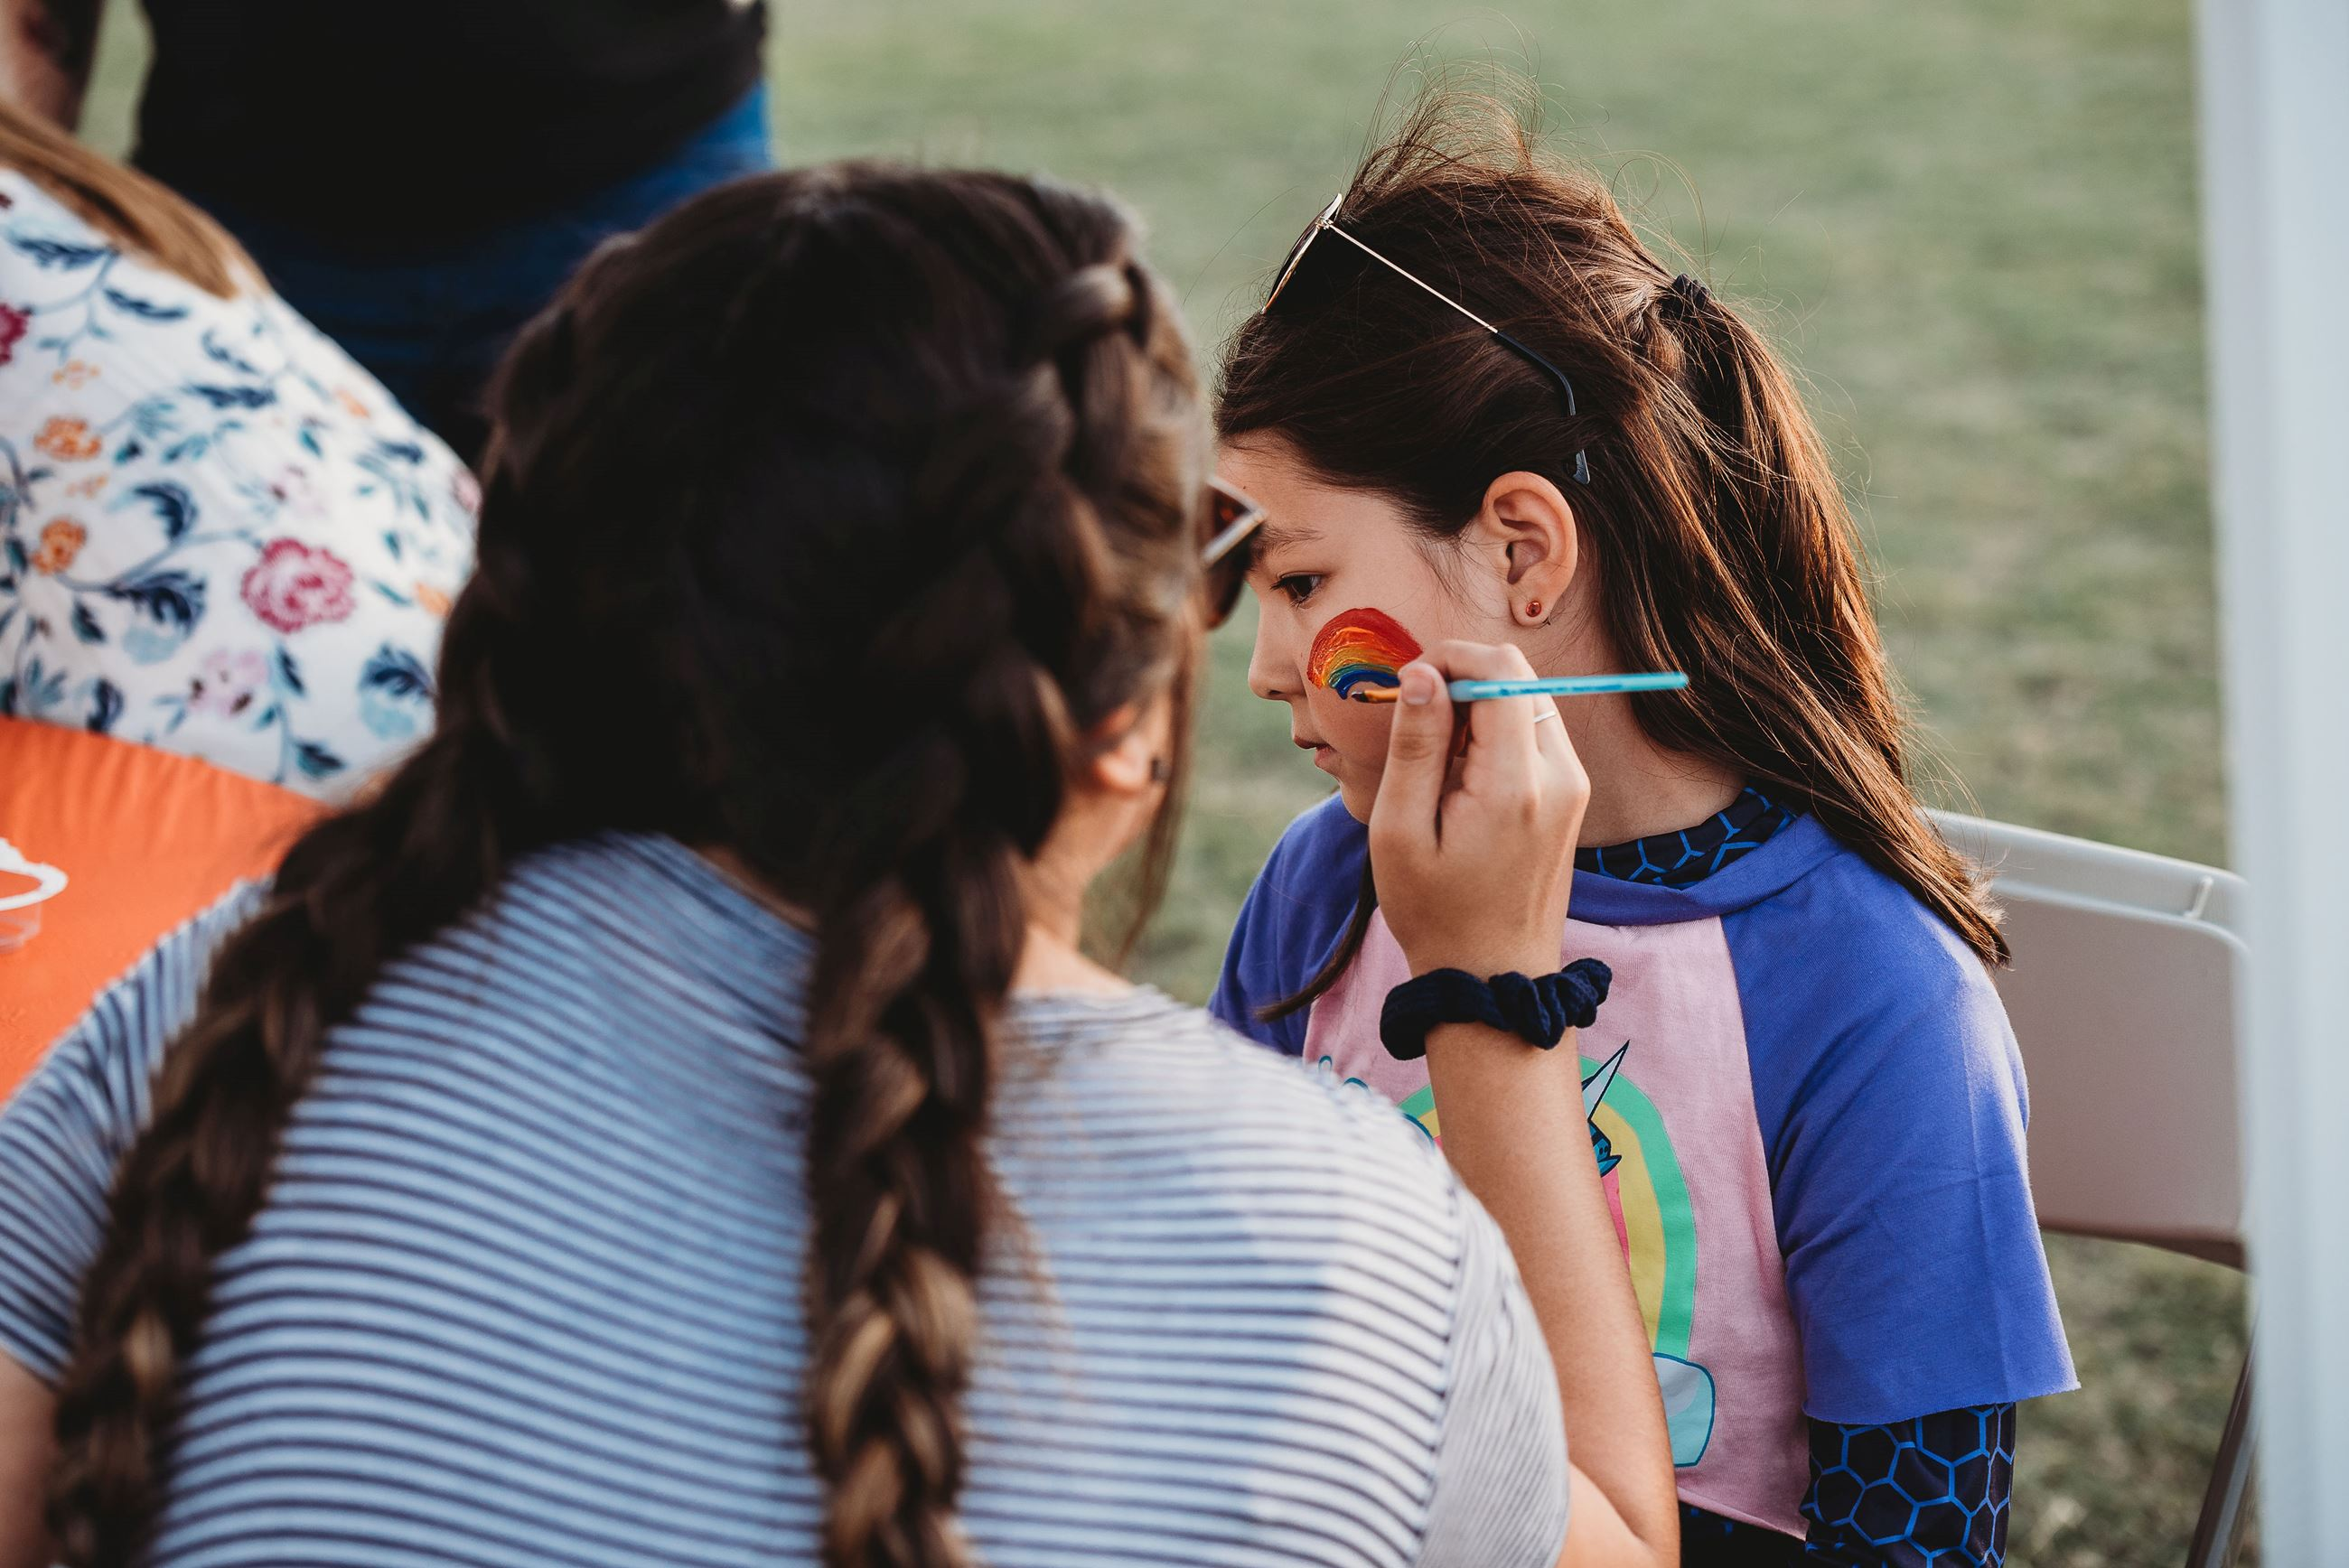 Girl Getting a Rainbow Painted on Her Cheek